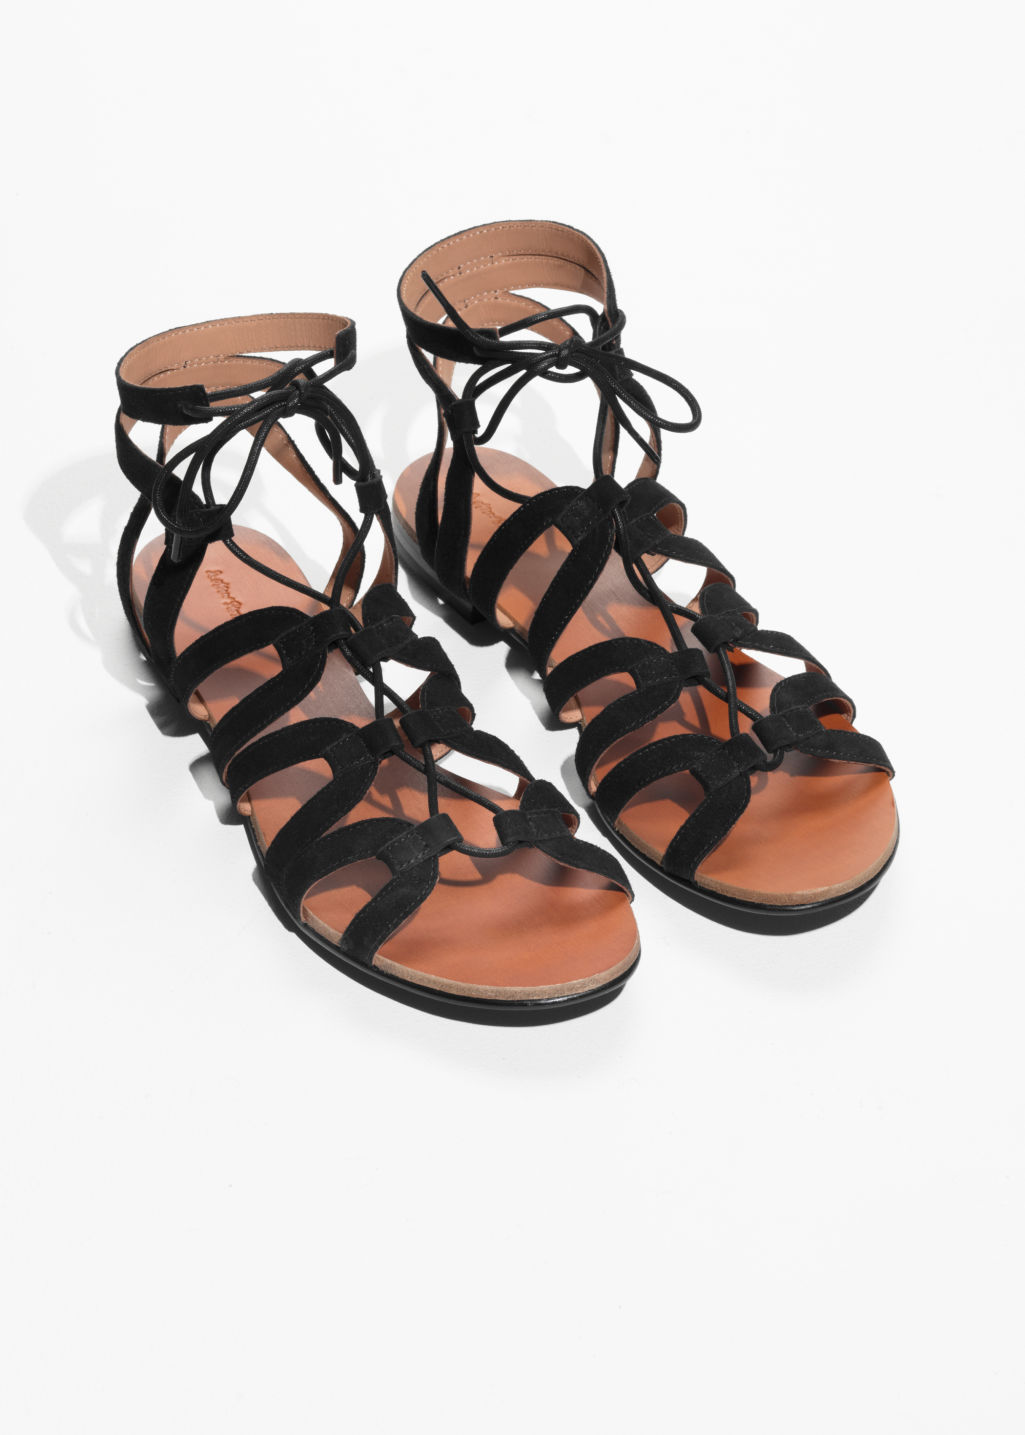 & OTHER STORIES Lacing Sandals fPw1i